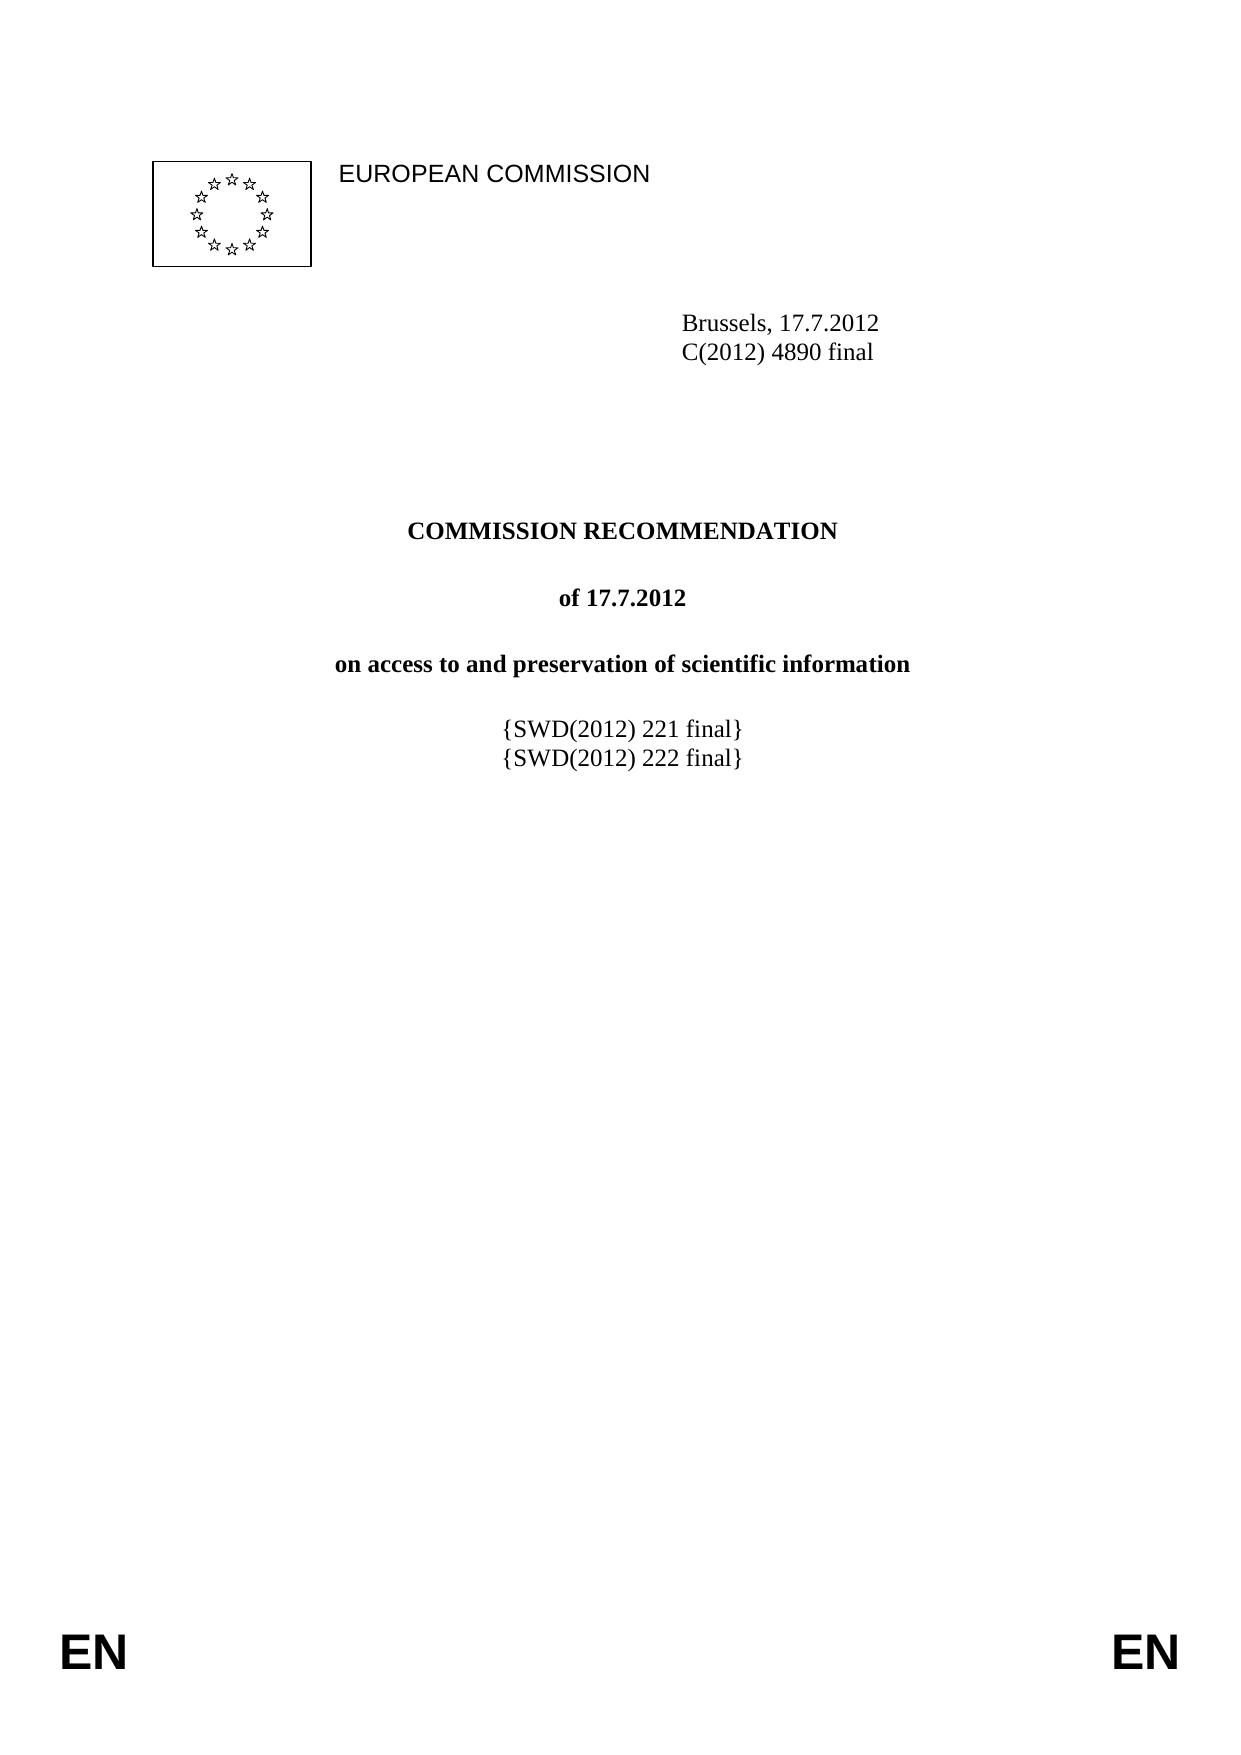 Commission Recommendation on access to and preservation of scientific information